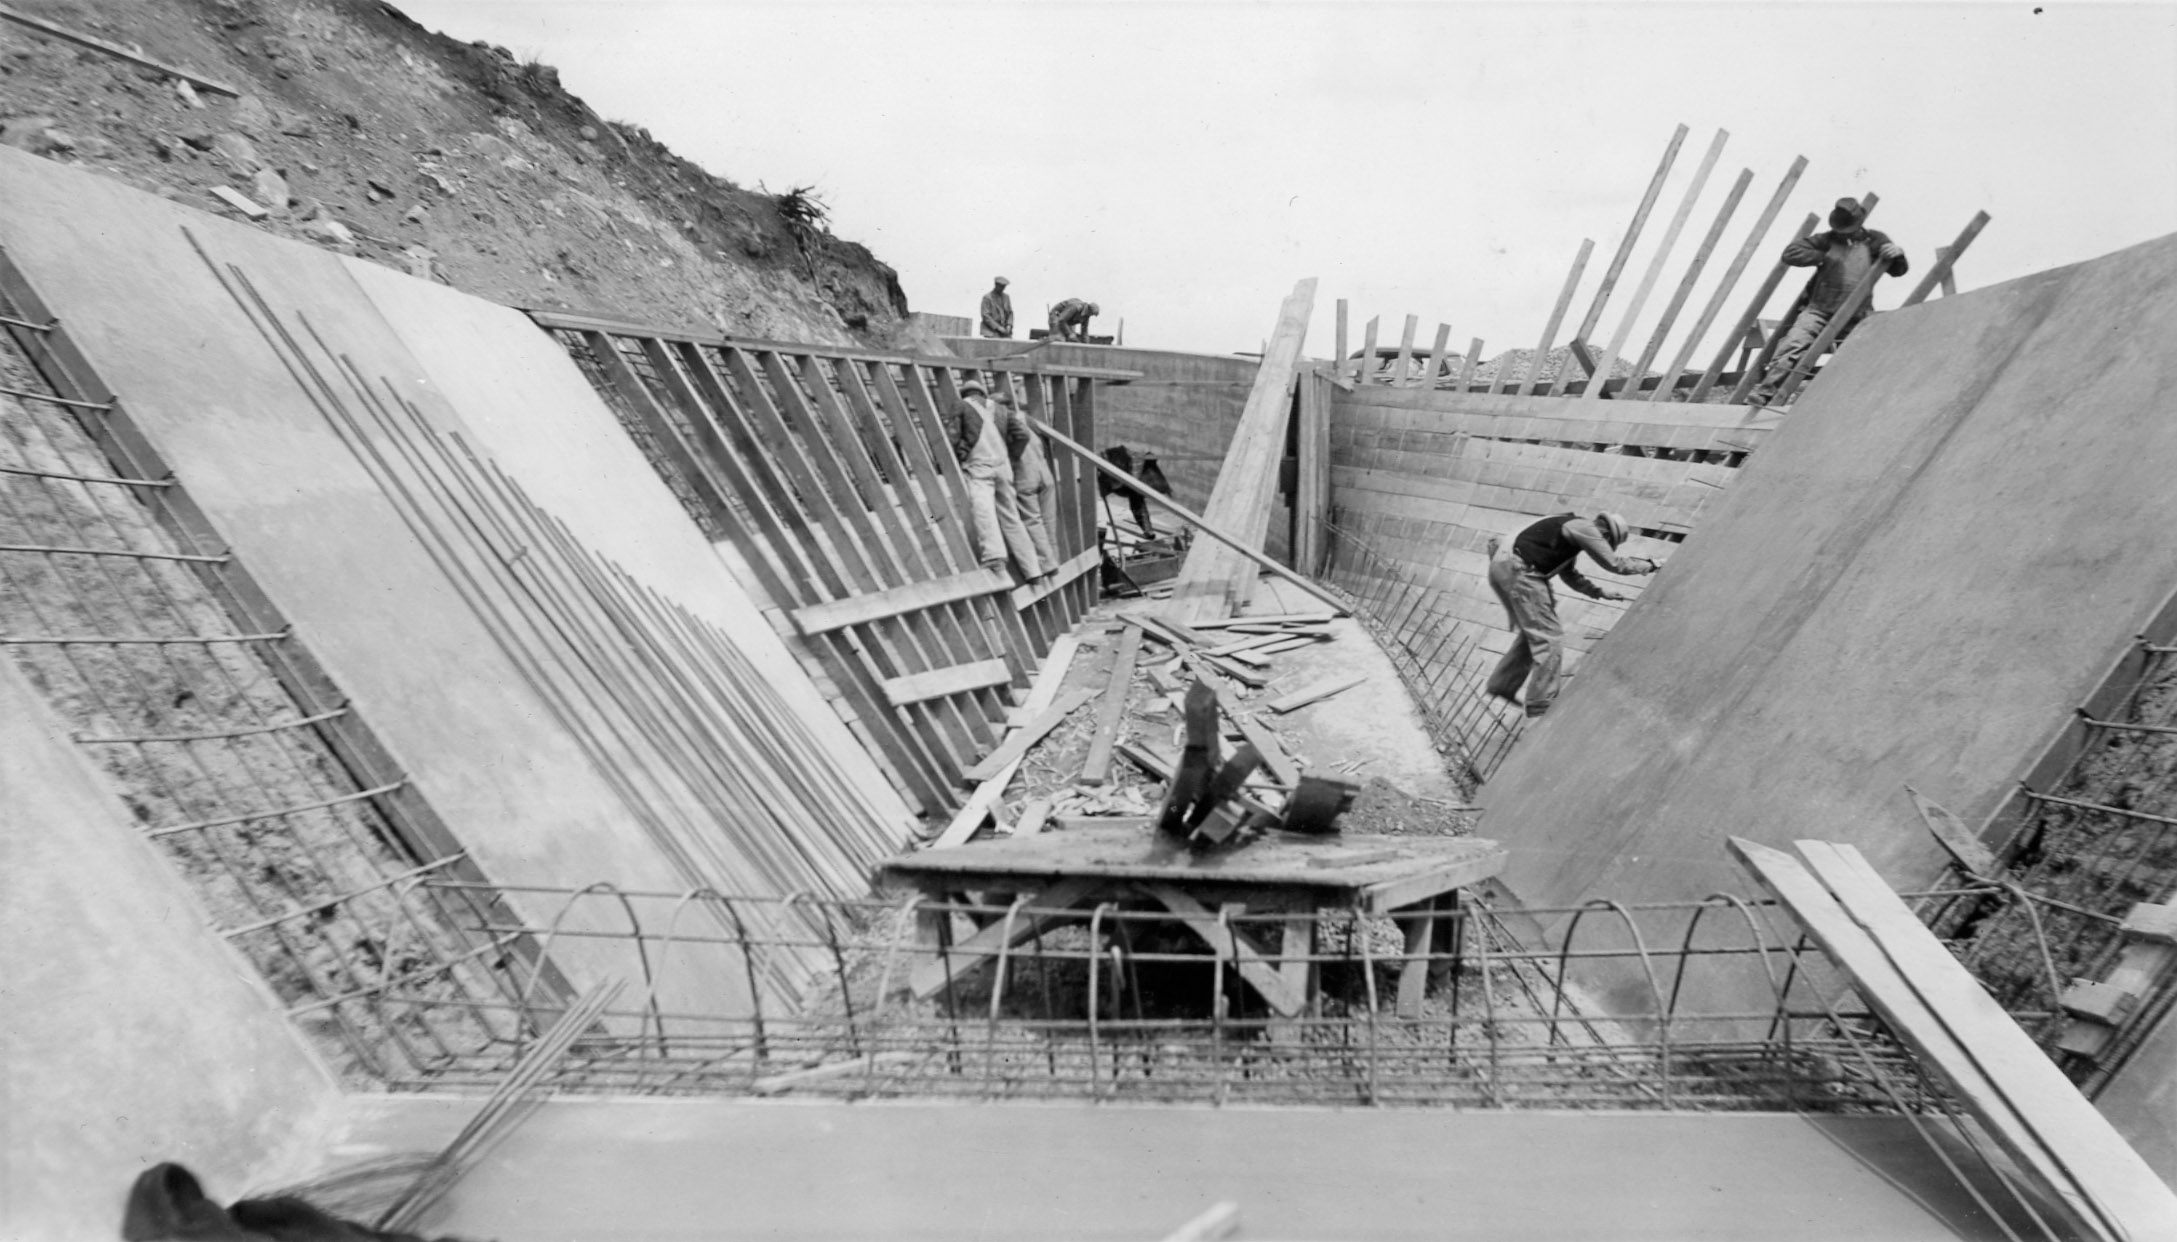 A black and white photo shows construction workers and scafolding building a canal.